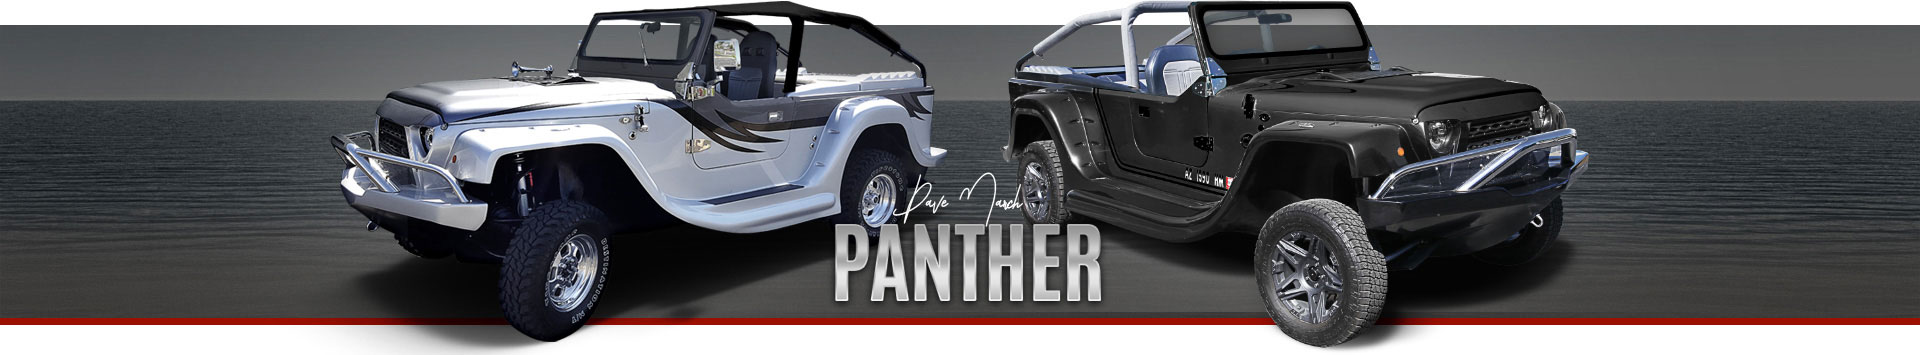 Panther-OurStory.jpg